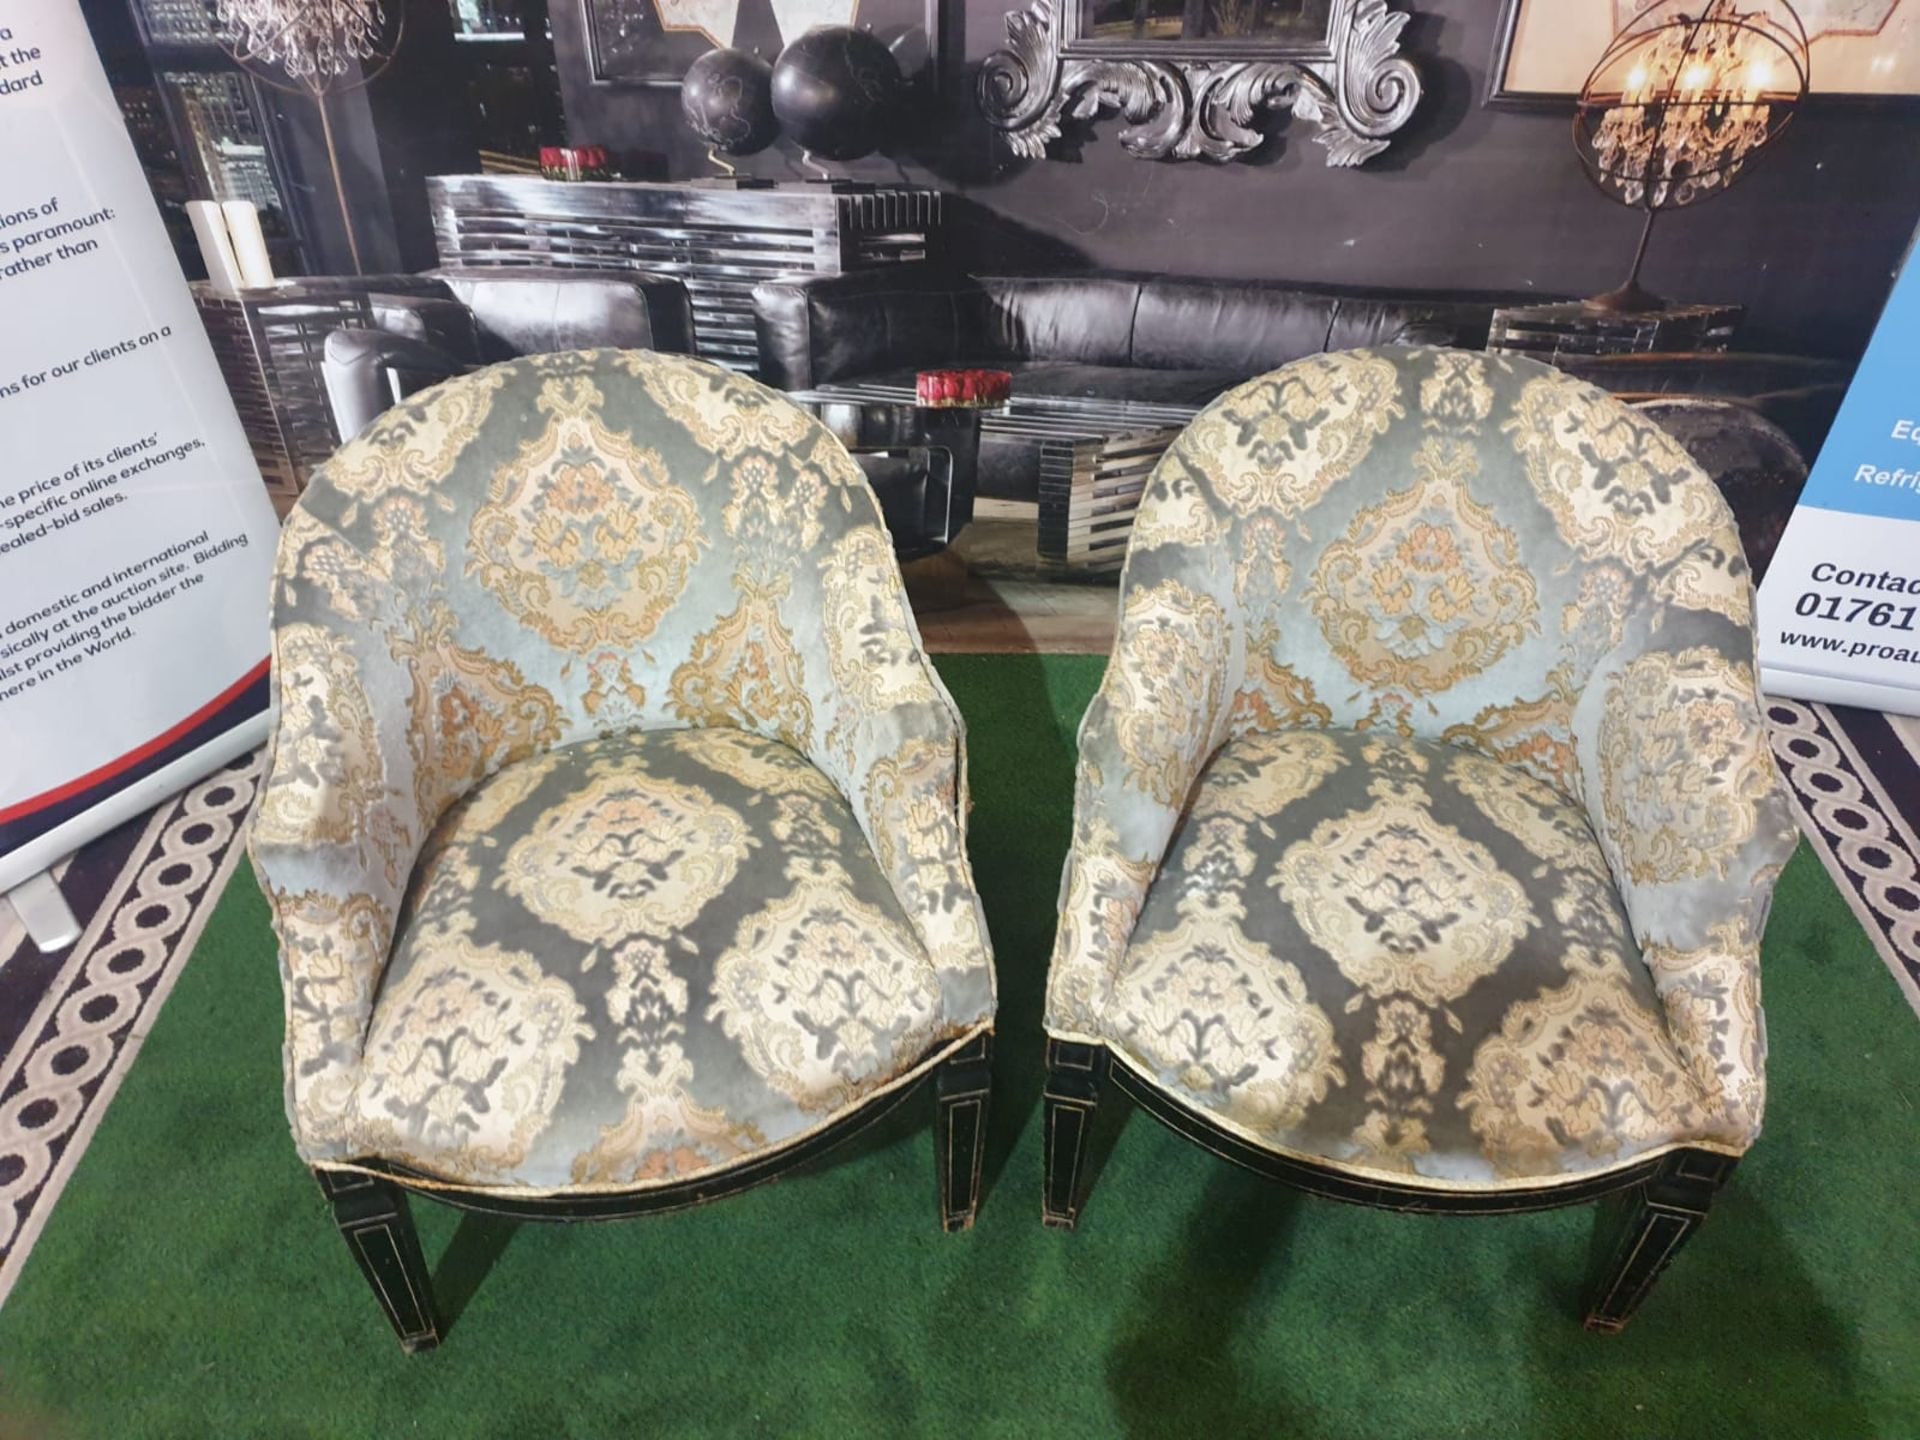 A Pair of Neoclassical / George III style Tub Chairs c. Early 20th Century Each with rounded backs - Image 2 of 3